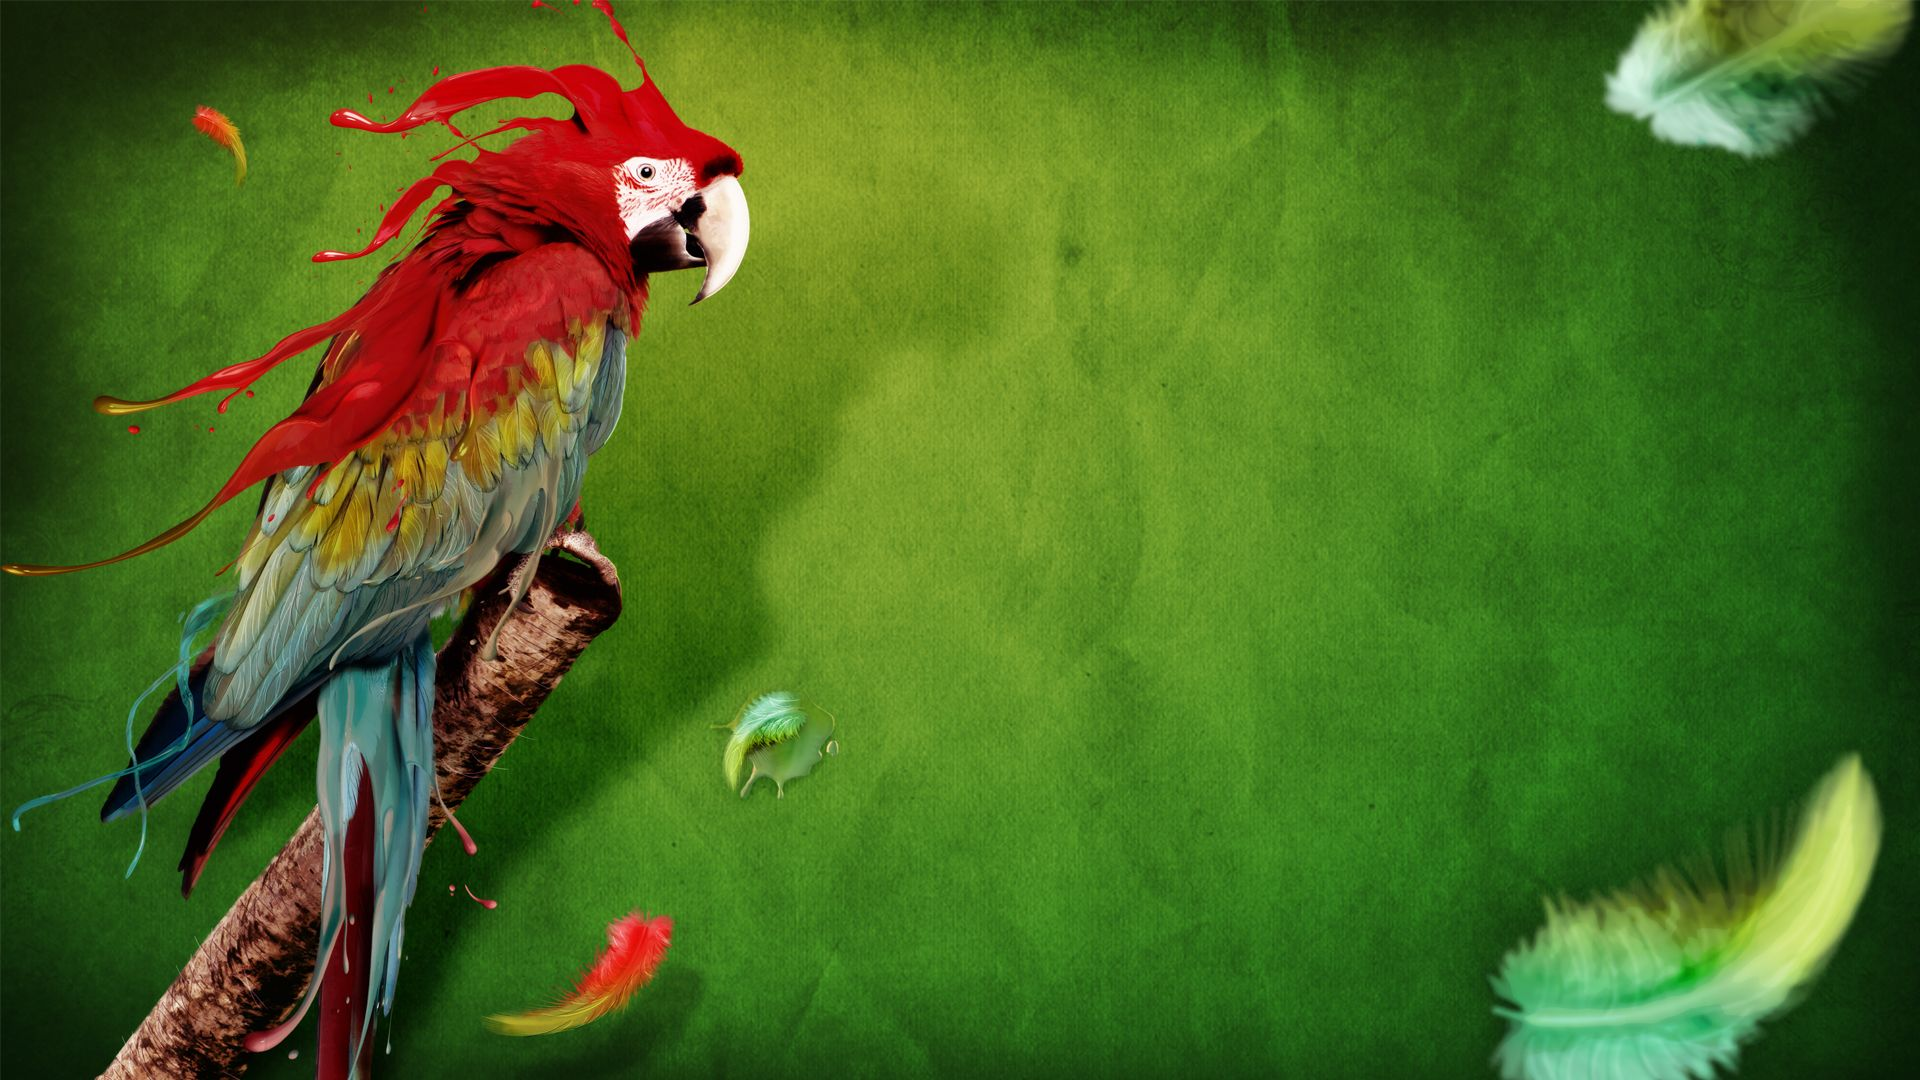 Free Hd Color Background Wallpaper Retrato Familiar Imagenes Aleatorias Loros